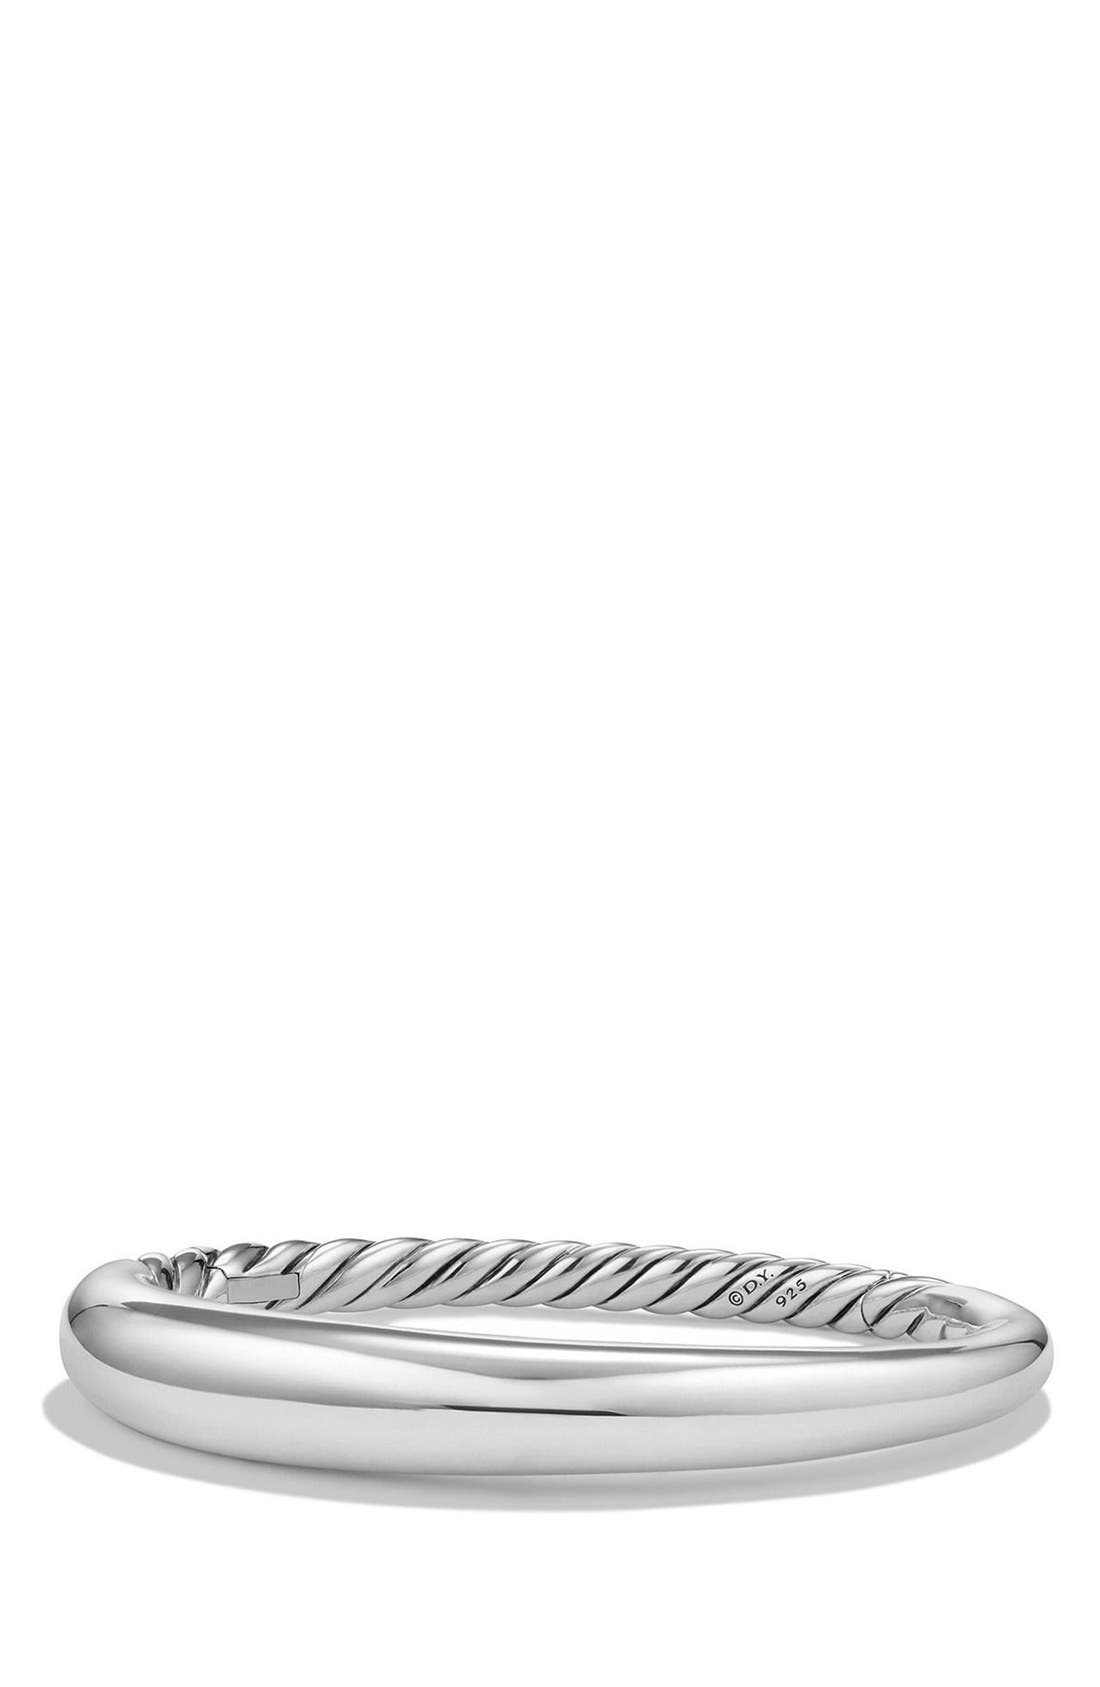 Main Image - David Yurman 'Pure Form' Small Sterling Silver Bracelet